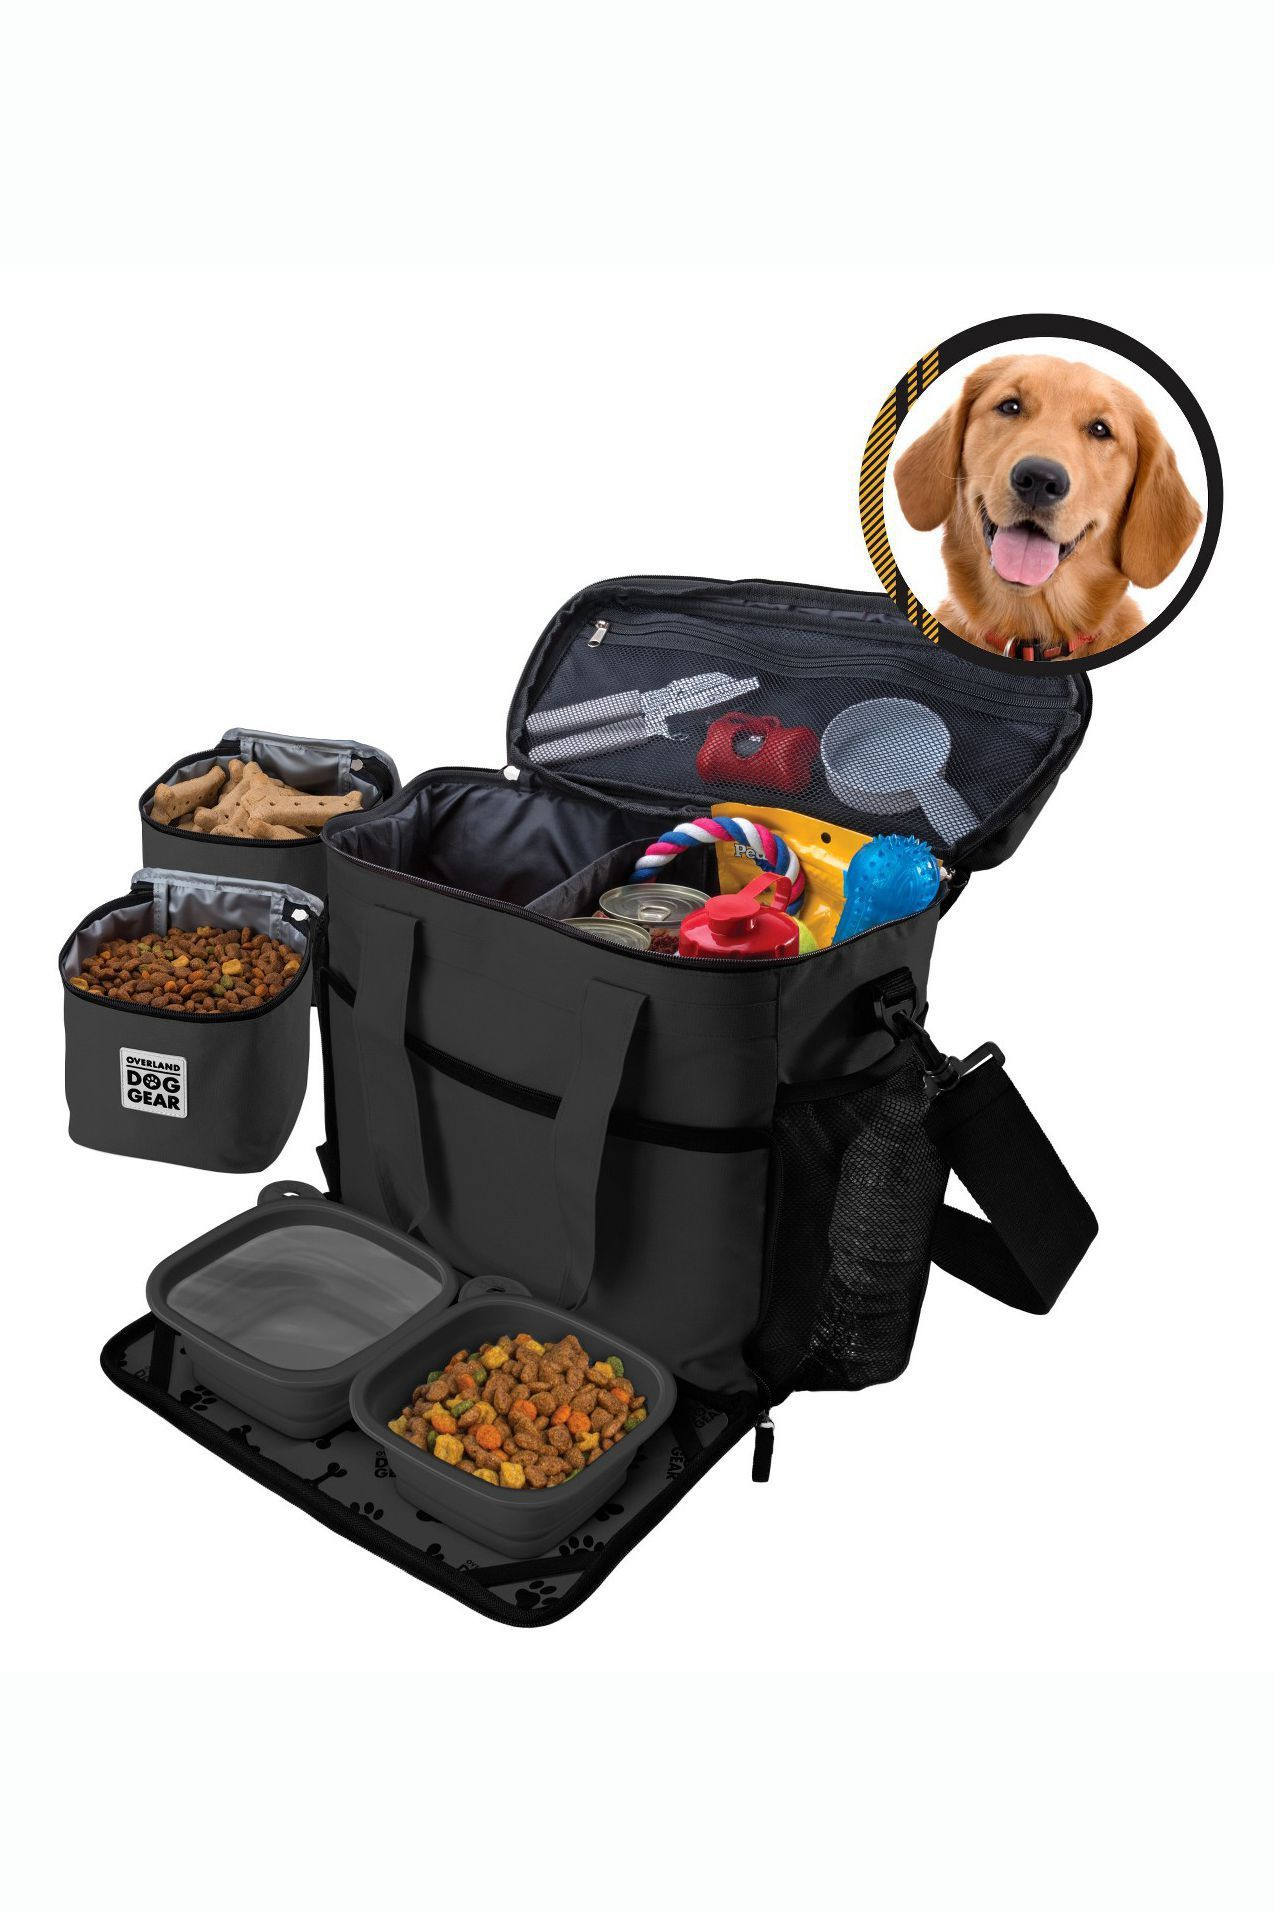 20 Camping With Dogs Tips And Ideas Best Dog Camping Gear